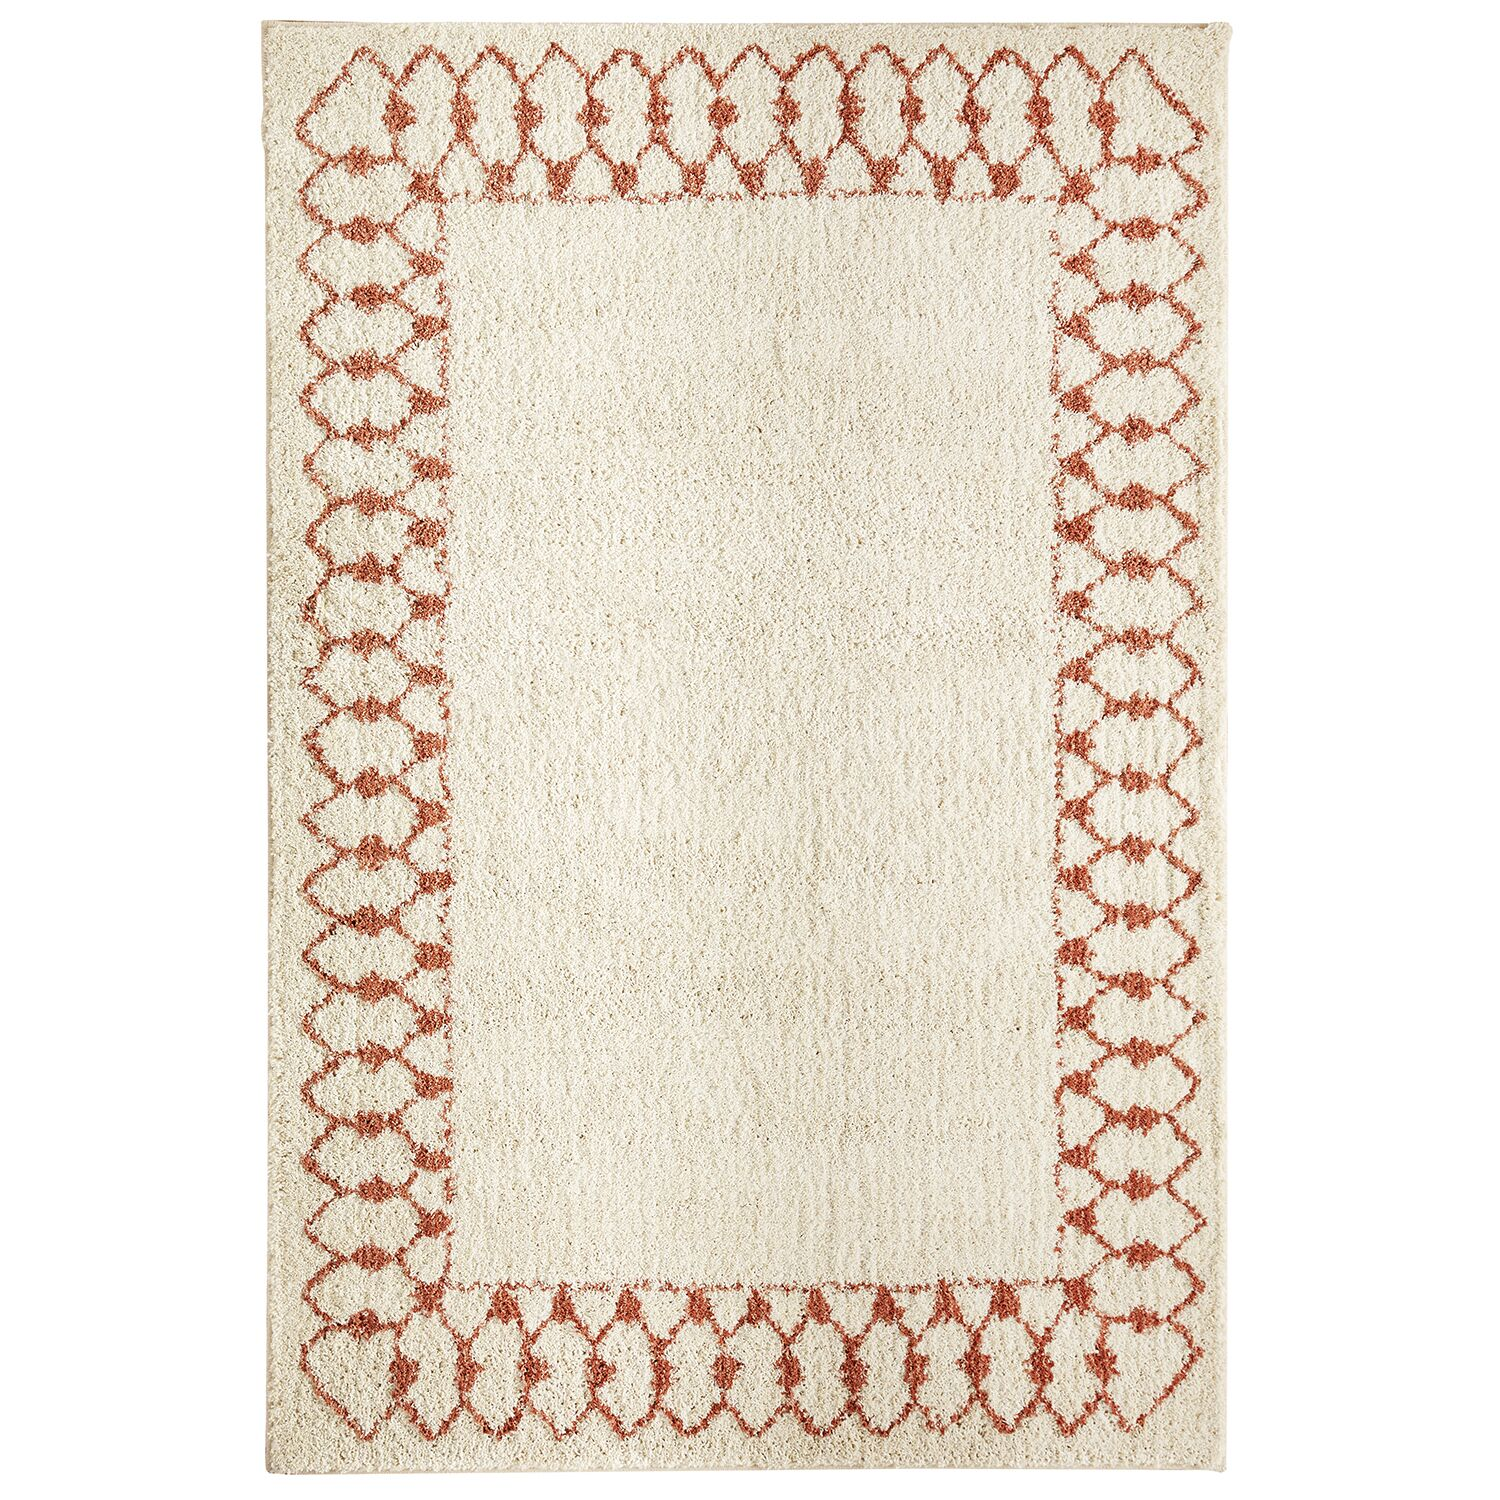 Cavanaville Chained Border Beige/Coral Area Rug Rug Size: Rectangle 5' x 8'